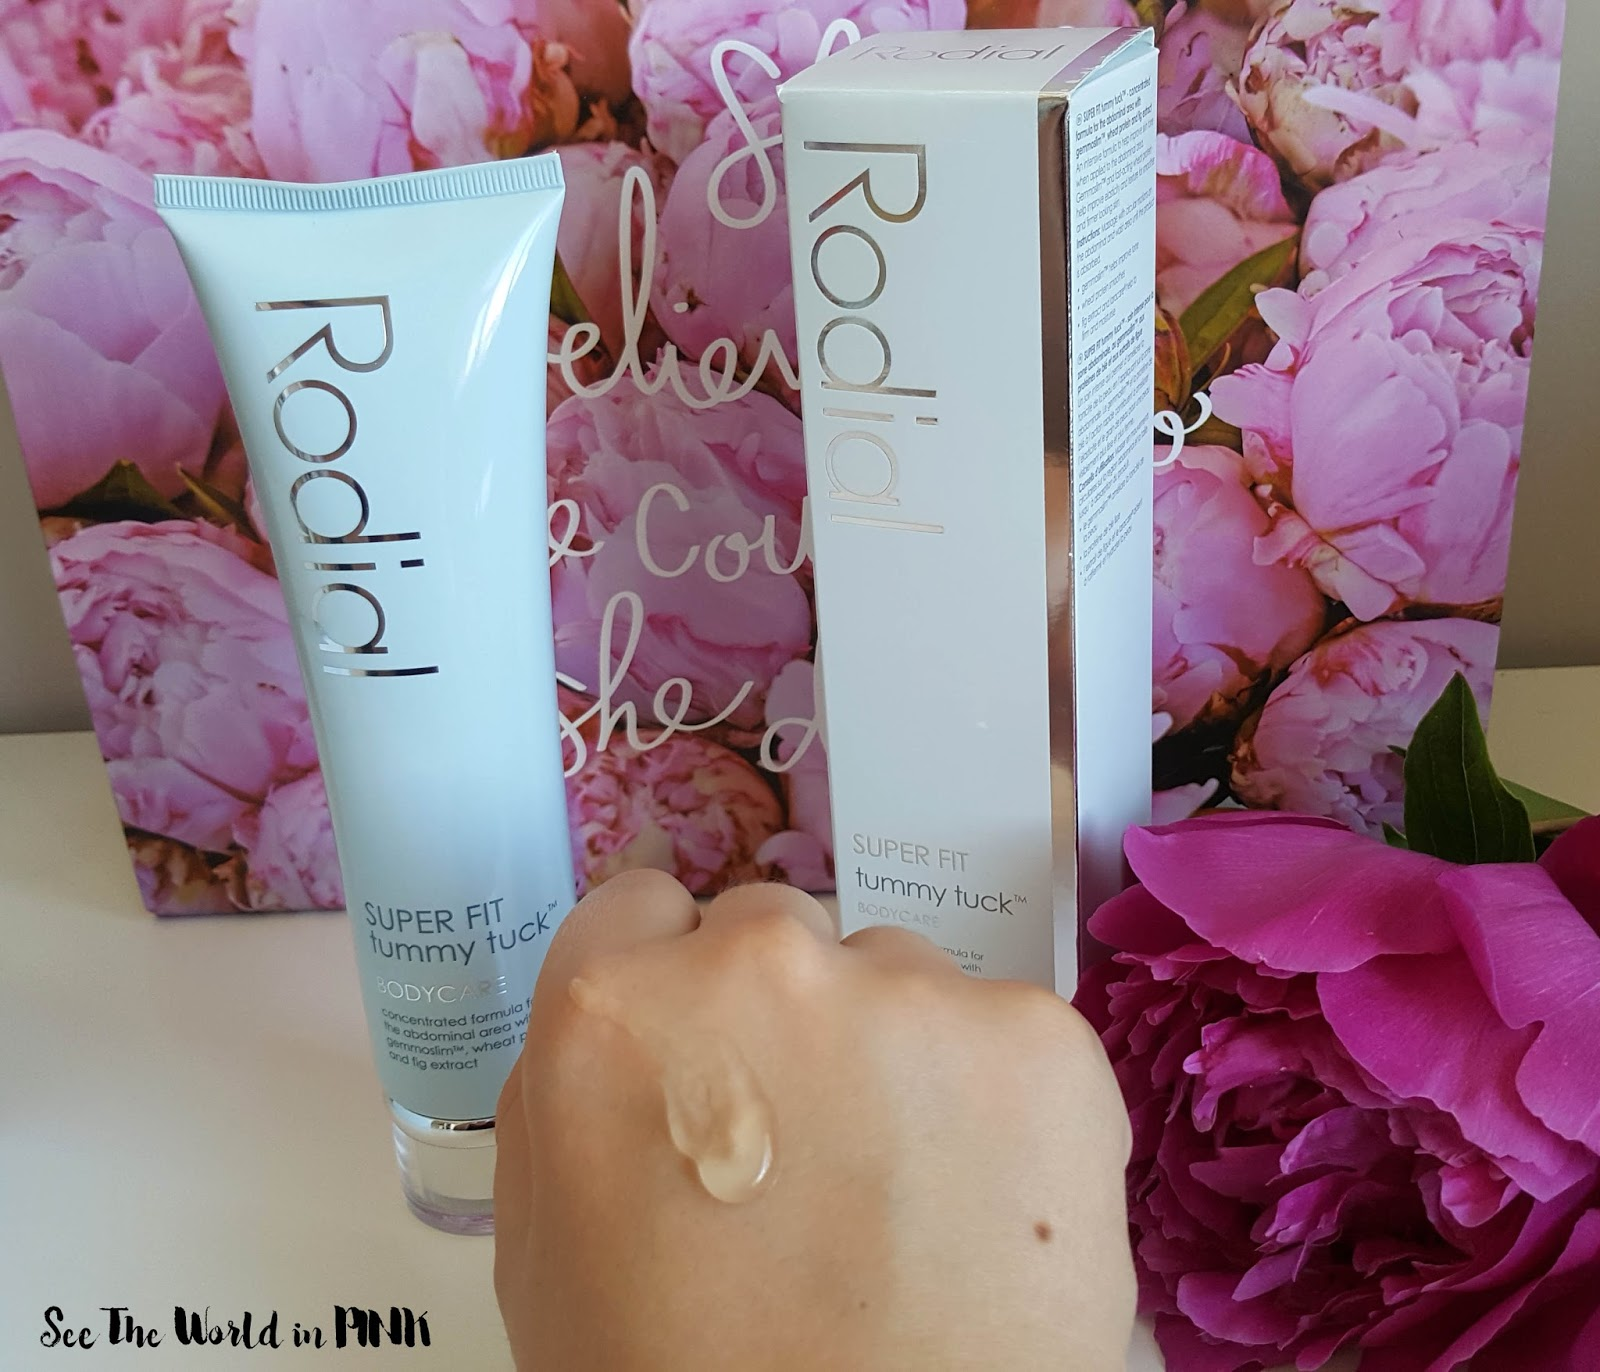 Skincare Sunday - Getting Summer Ready With Rodial!